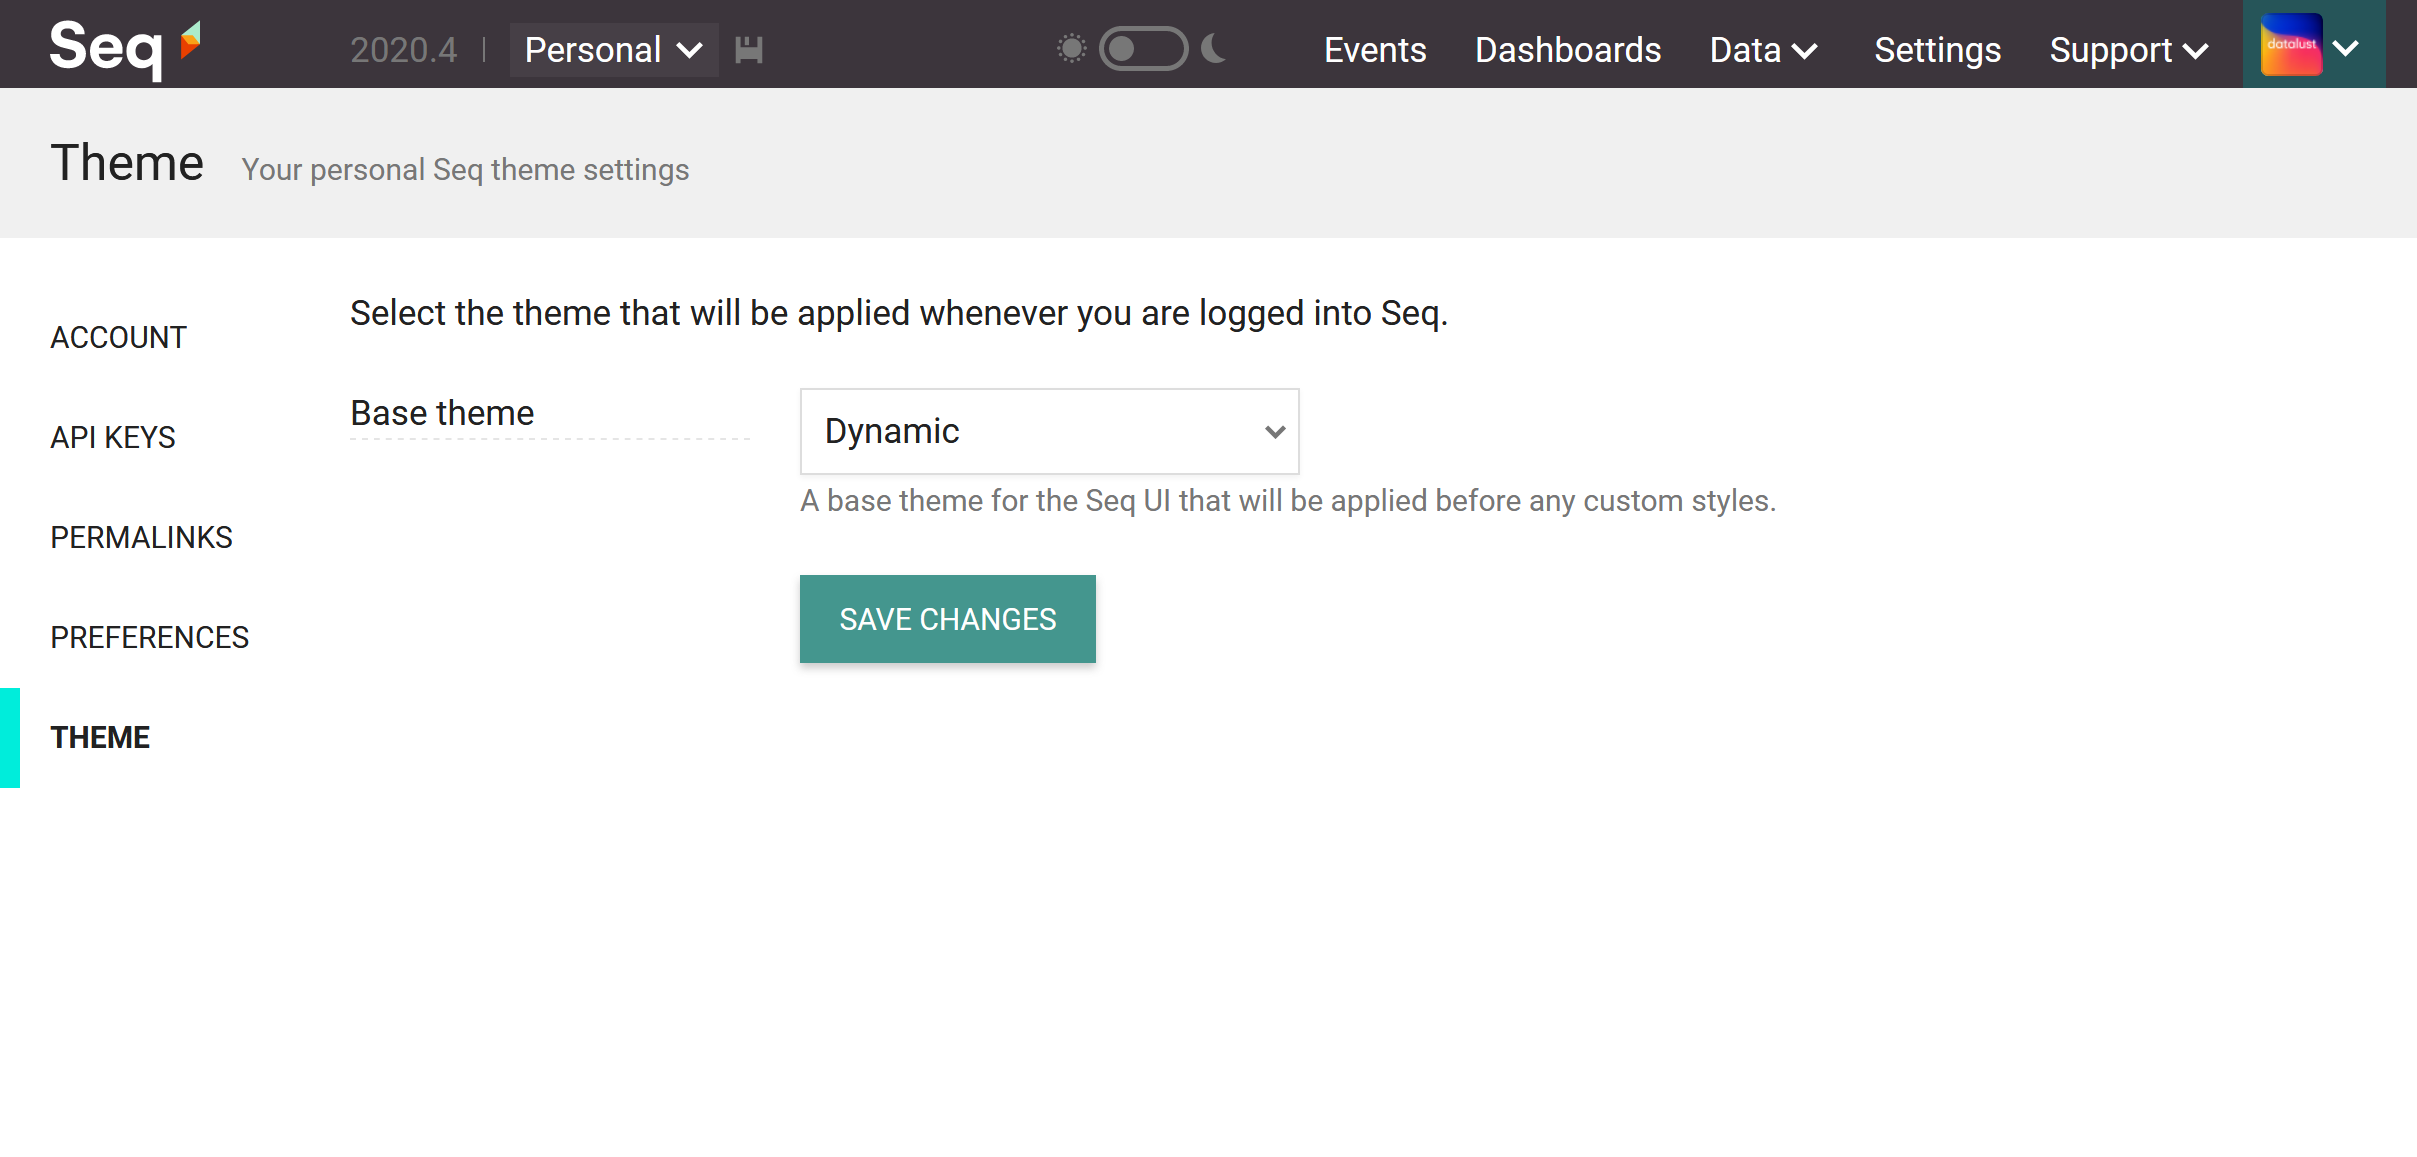 The Seq user preferences Theme page, showing the base theme selector with Dynamic option selected.